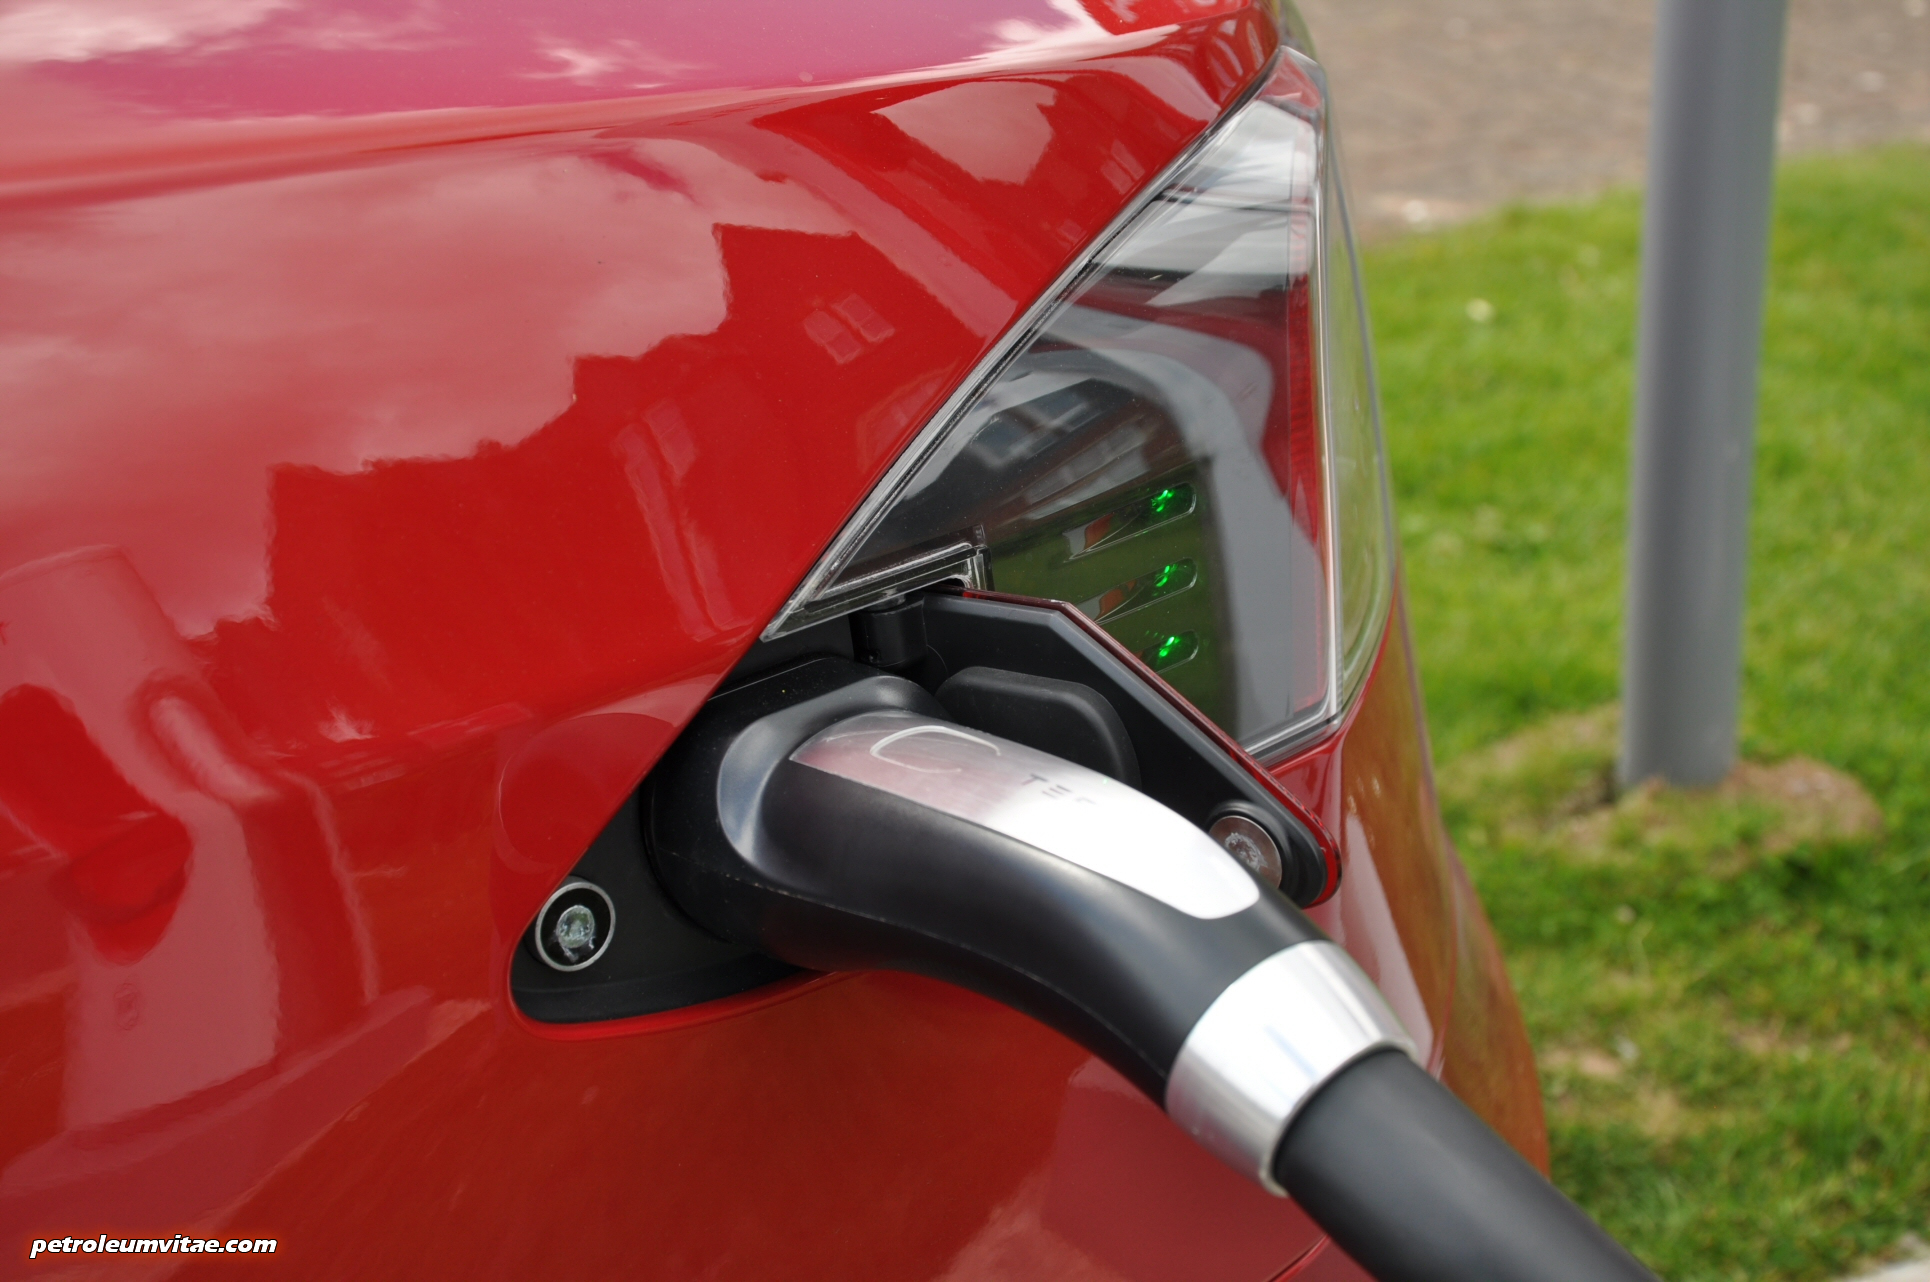 tesla charge cable fault 2017 - ototrends net